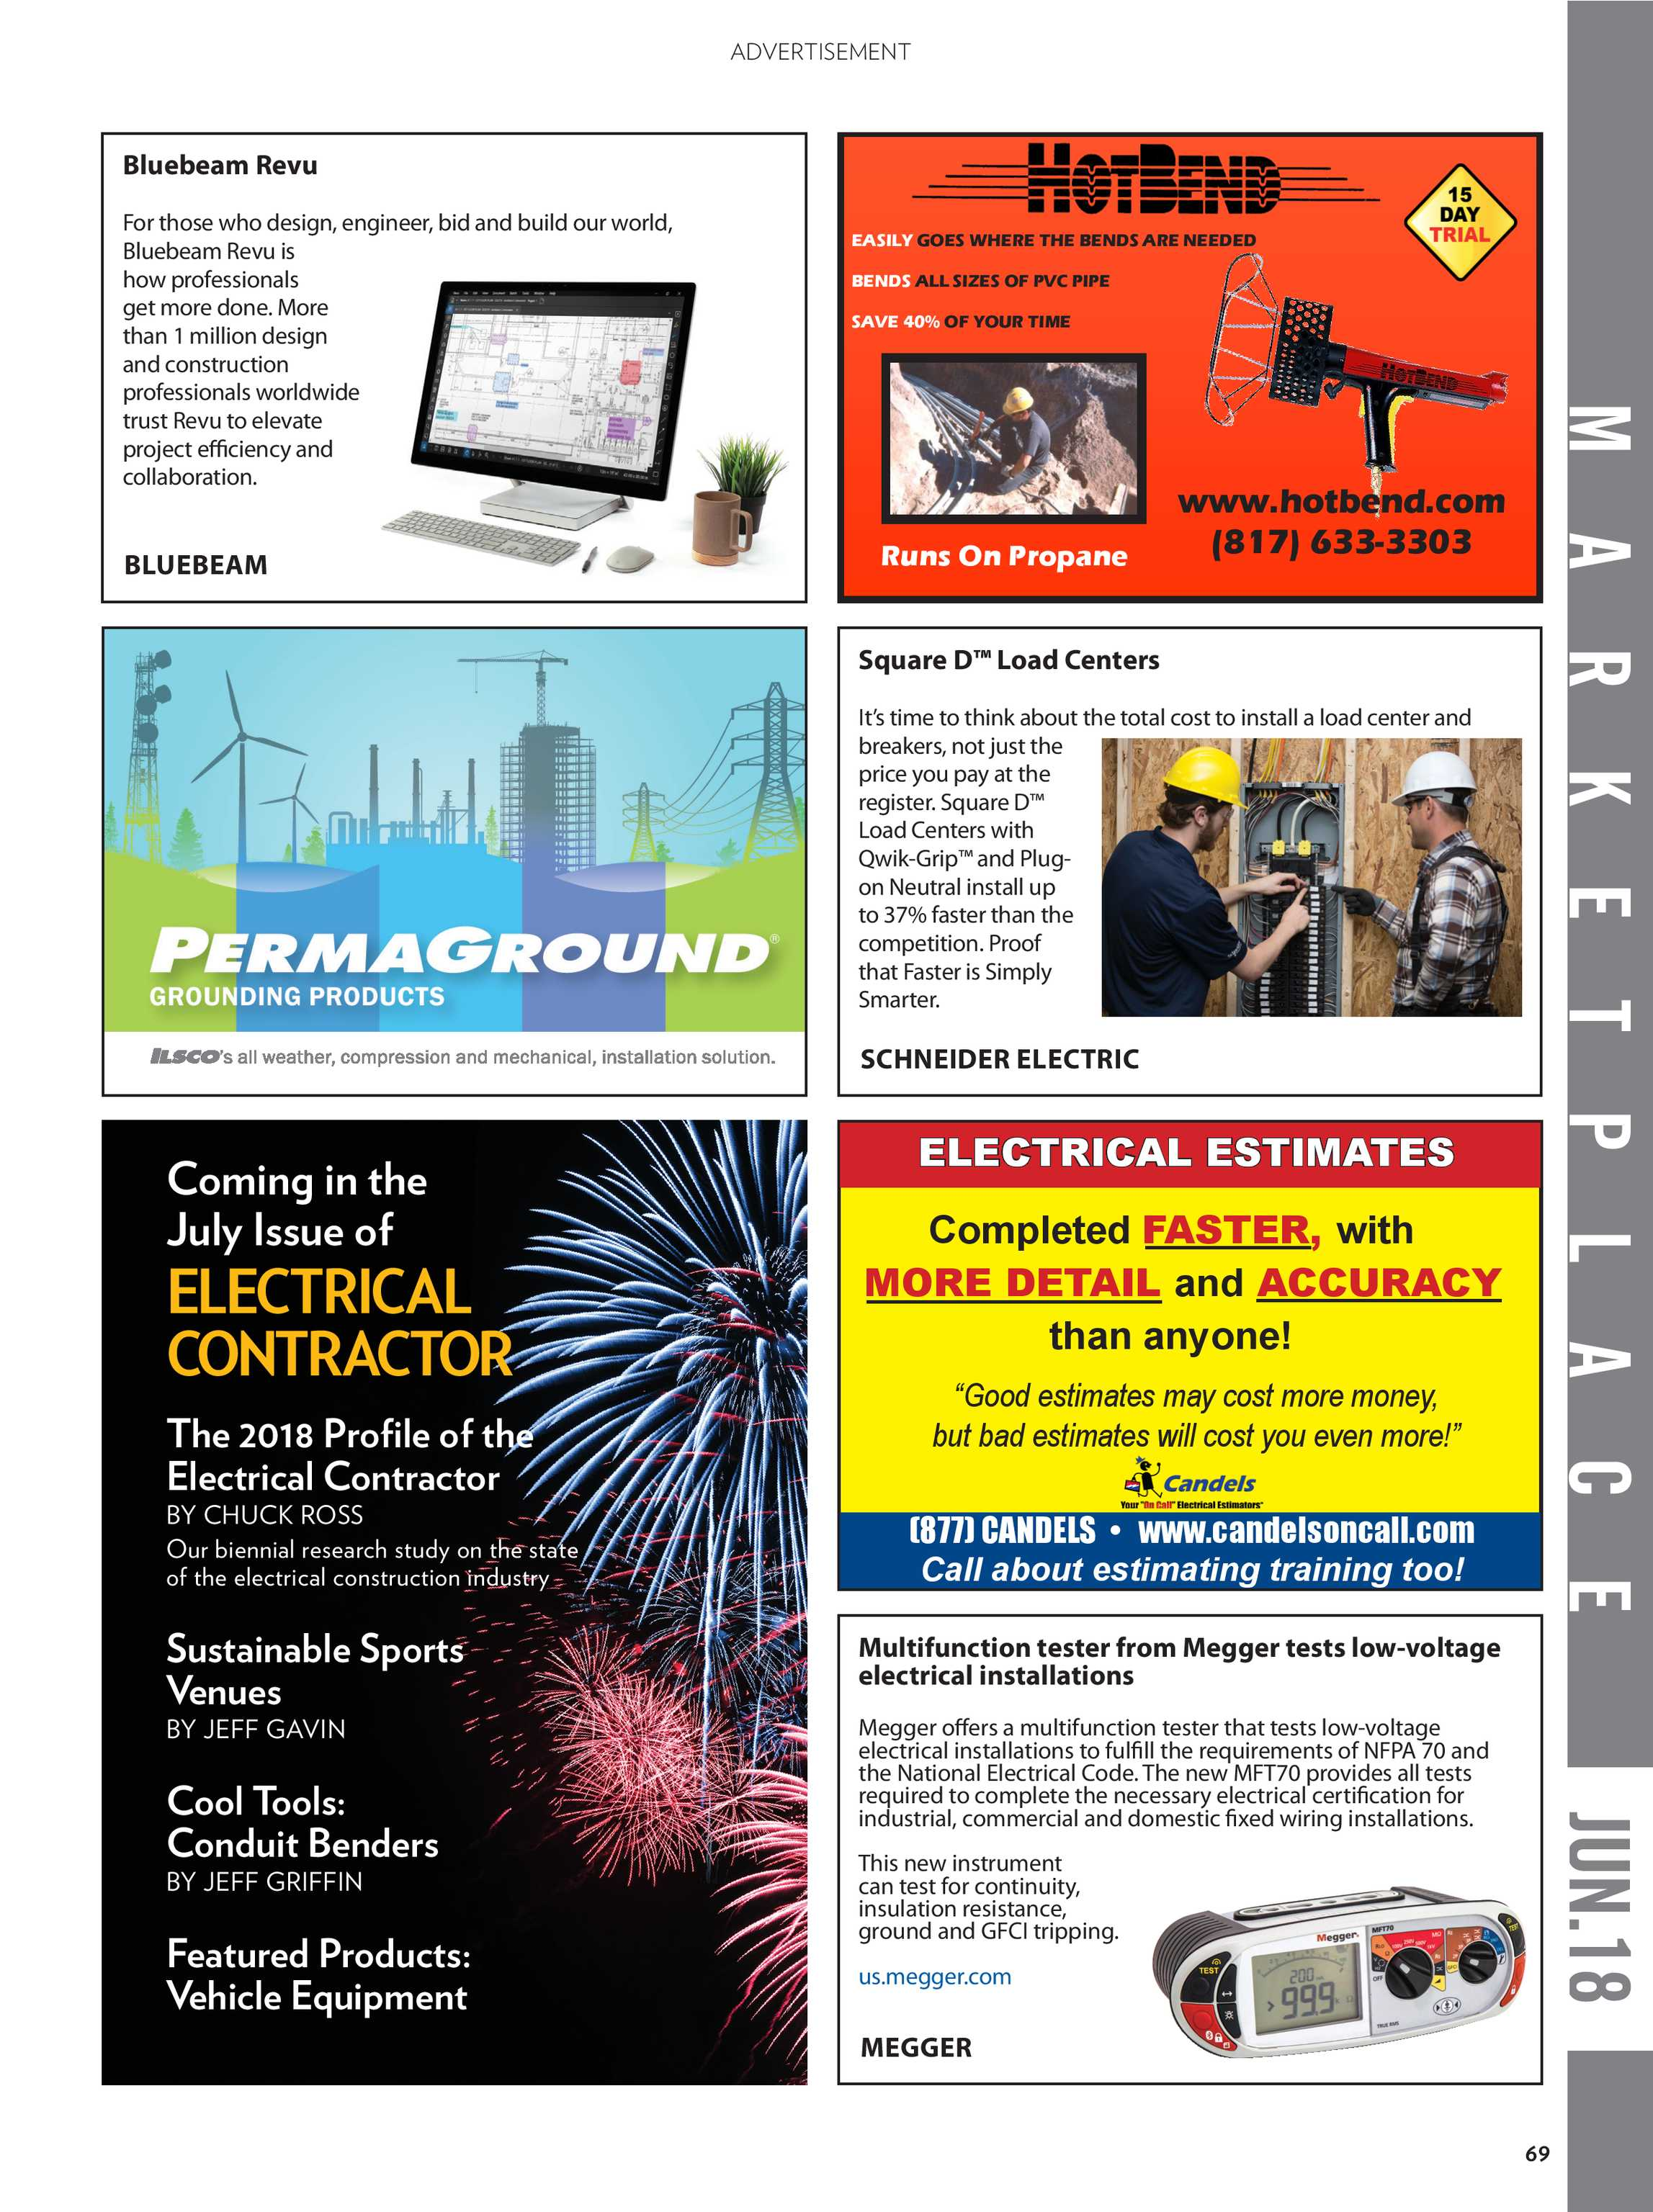 Electrical Contractor - February 2018 - page 68